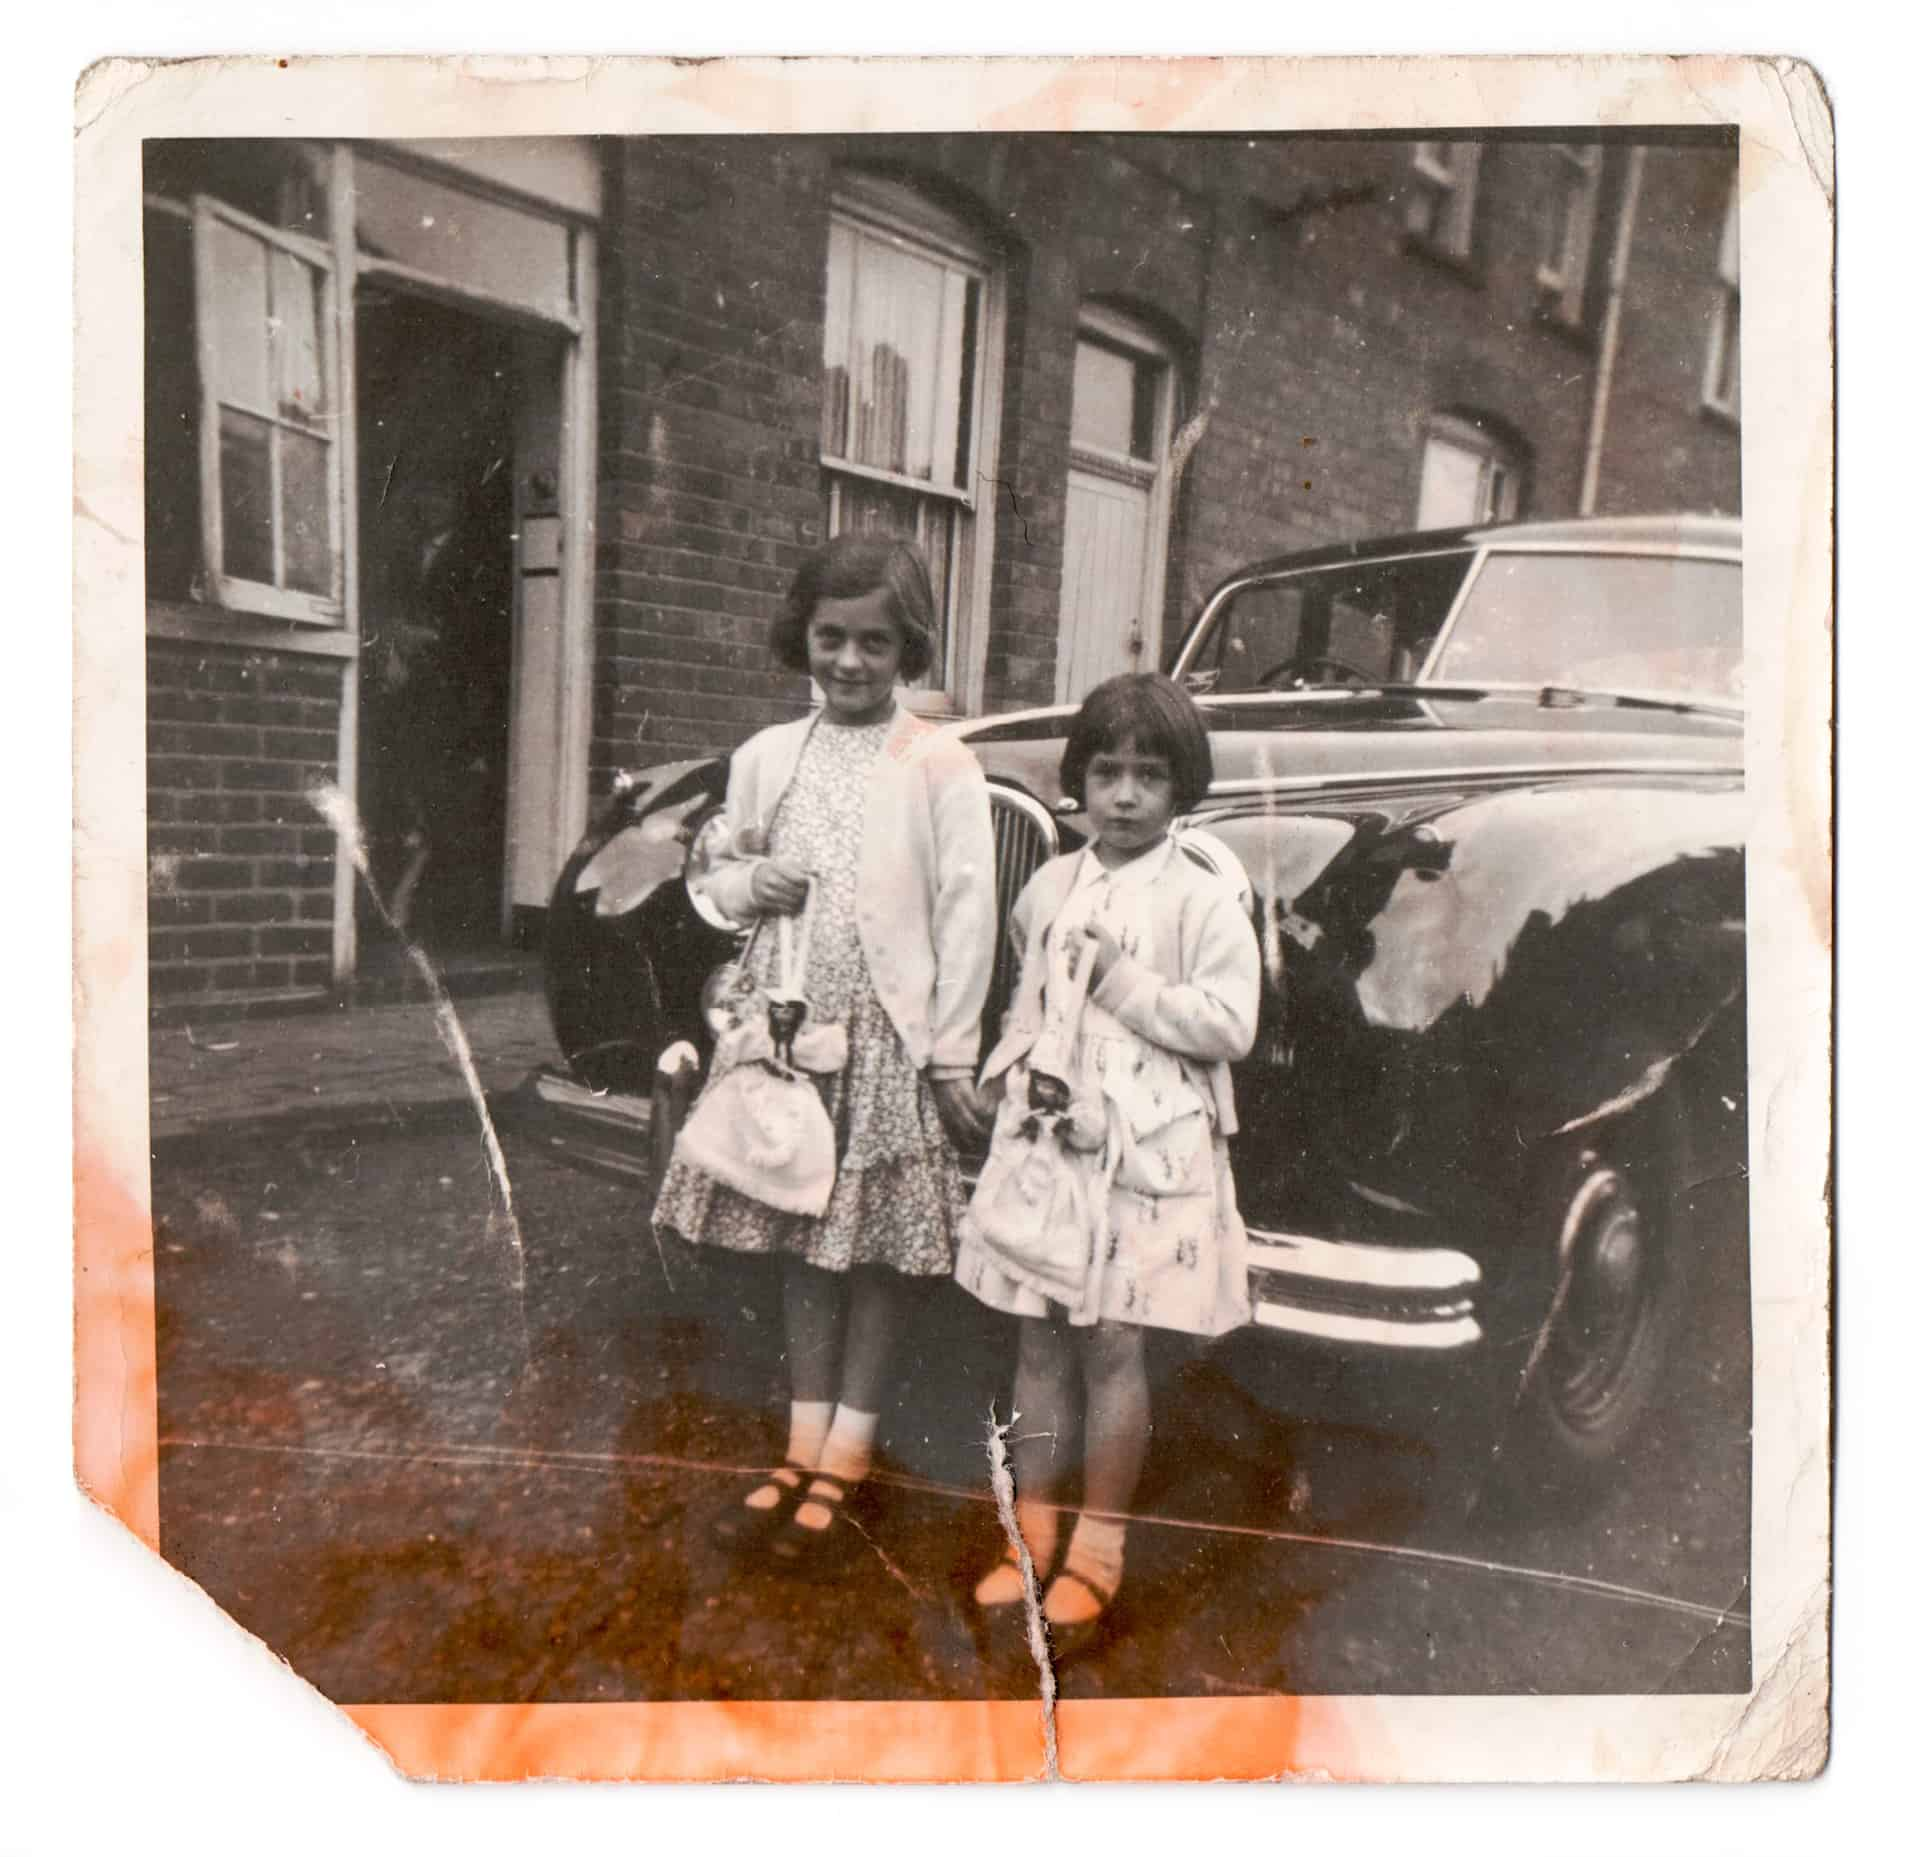 This is my sister and myself, I'm on the left. My sister's name is Denise, and she is still local -  she lives in Smethwick now. We meet all the time. In this picture we are holding what was called 'Doll Bags' They were just a little bag behind the skirt with a zip. This would be a Sunday and this would be our Sunday 'walking out' outfit at that time.